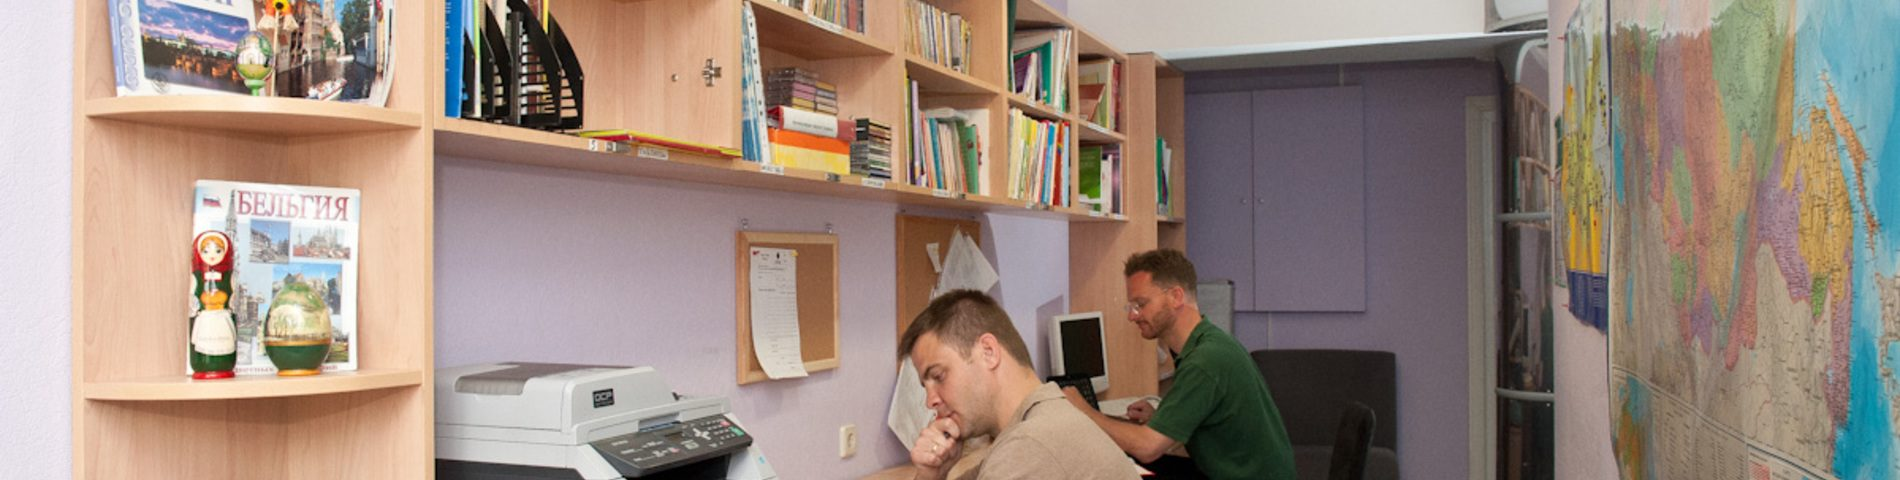 Liden & Denz Language Centre picture 7